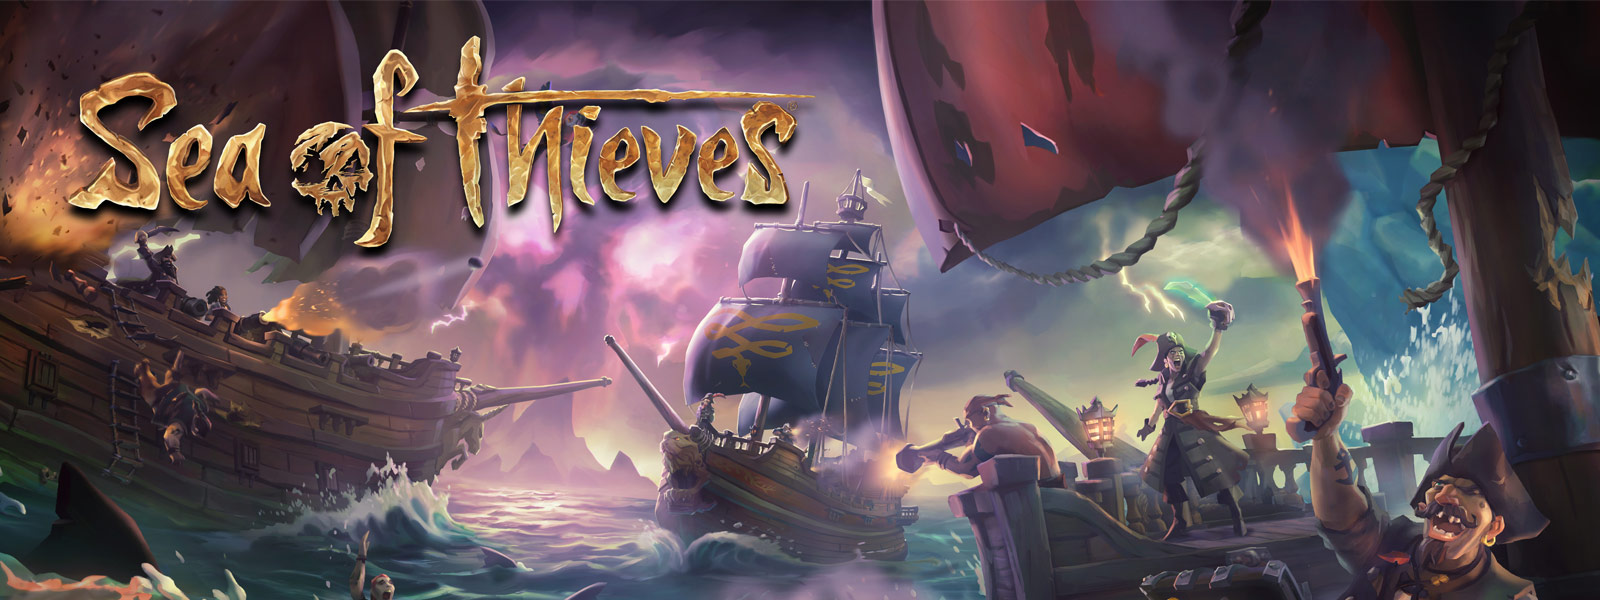 Sea of Theives - Ships battling in the ocean with a boat firing at other ships